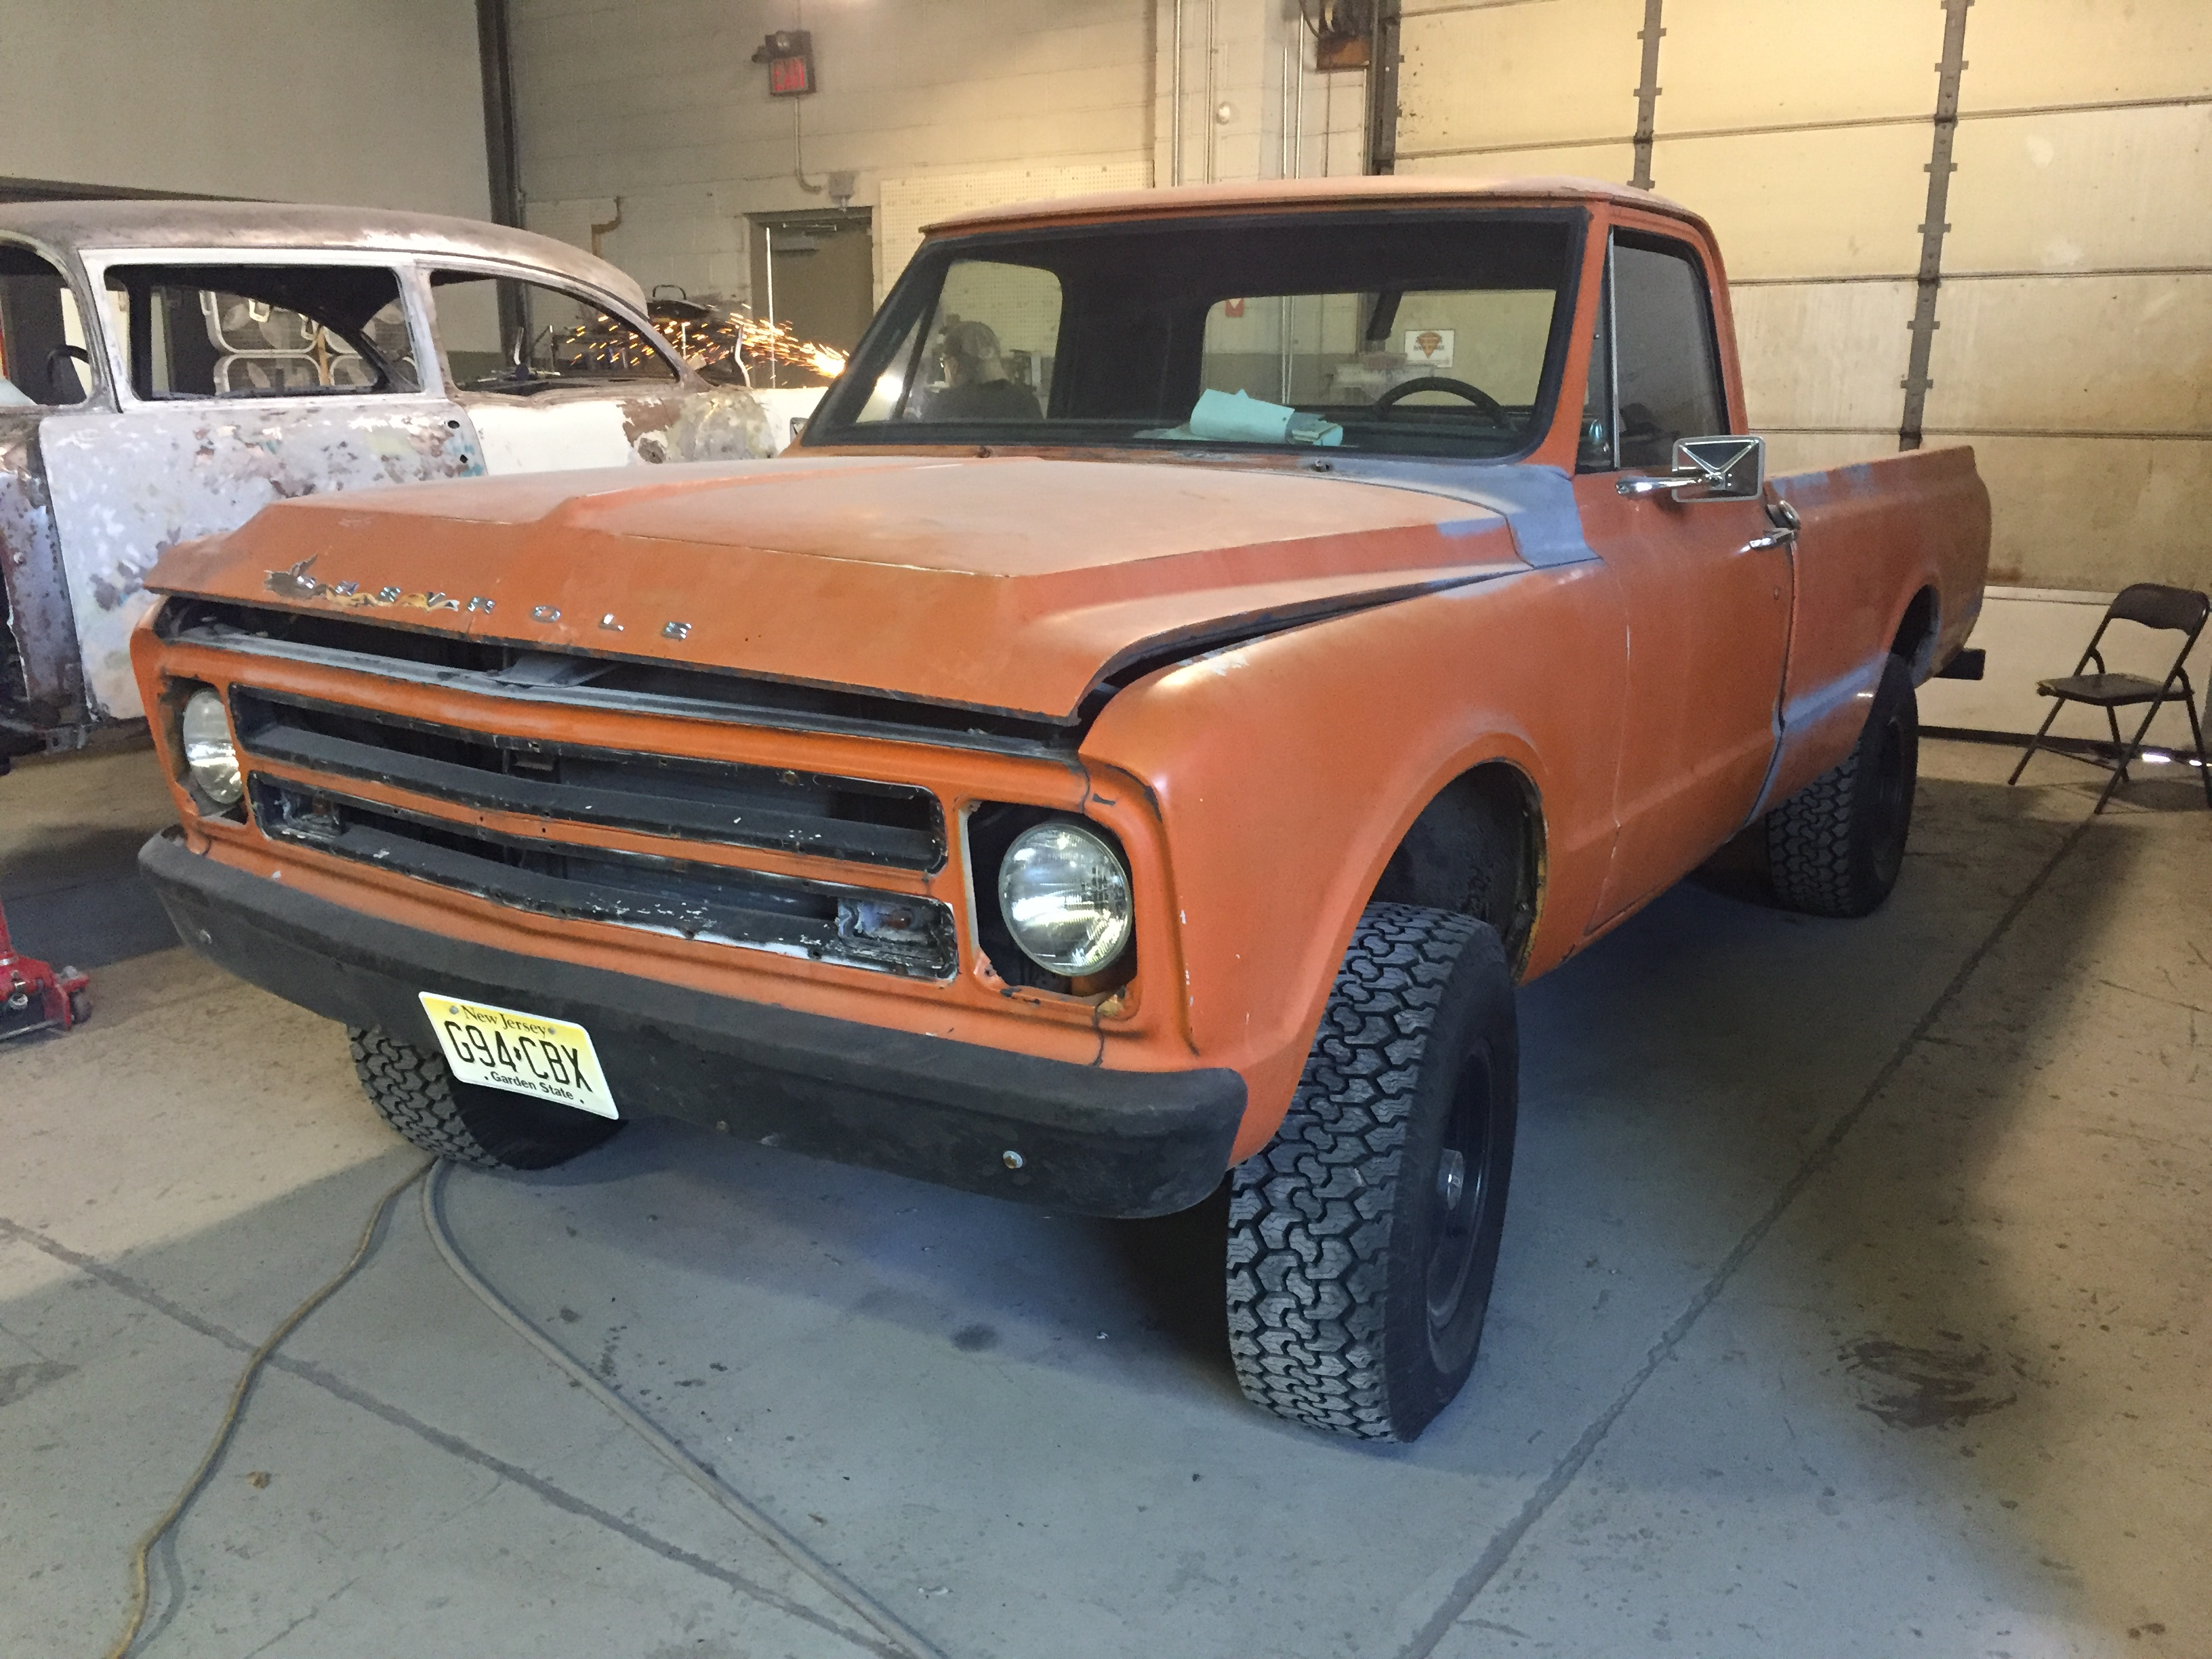 Chevy truck restoration